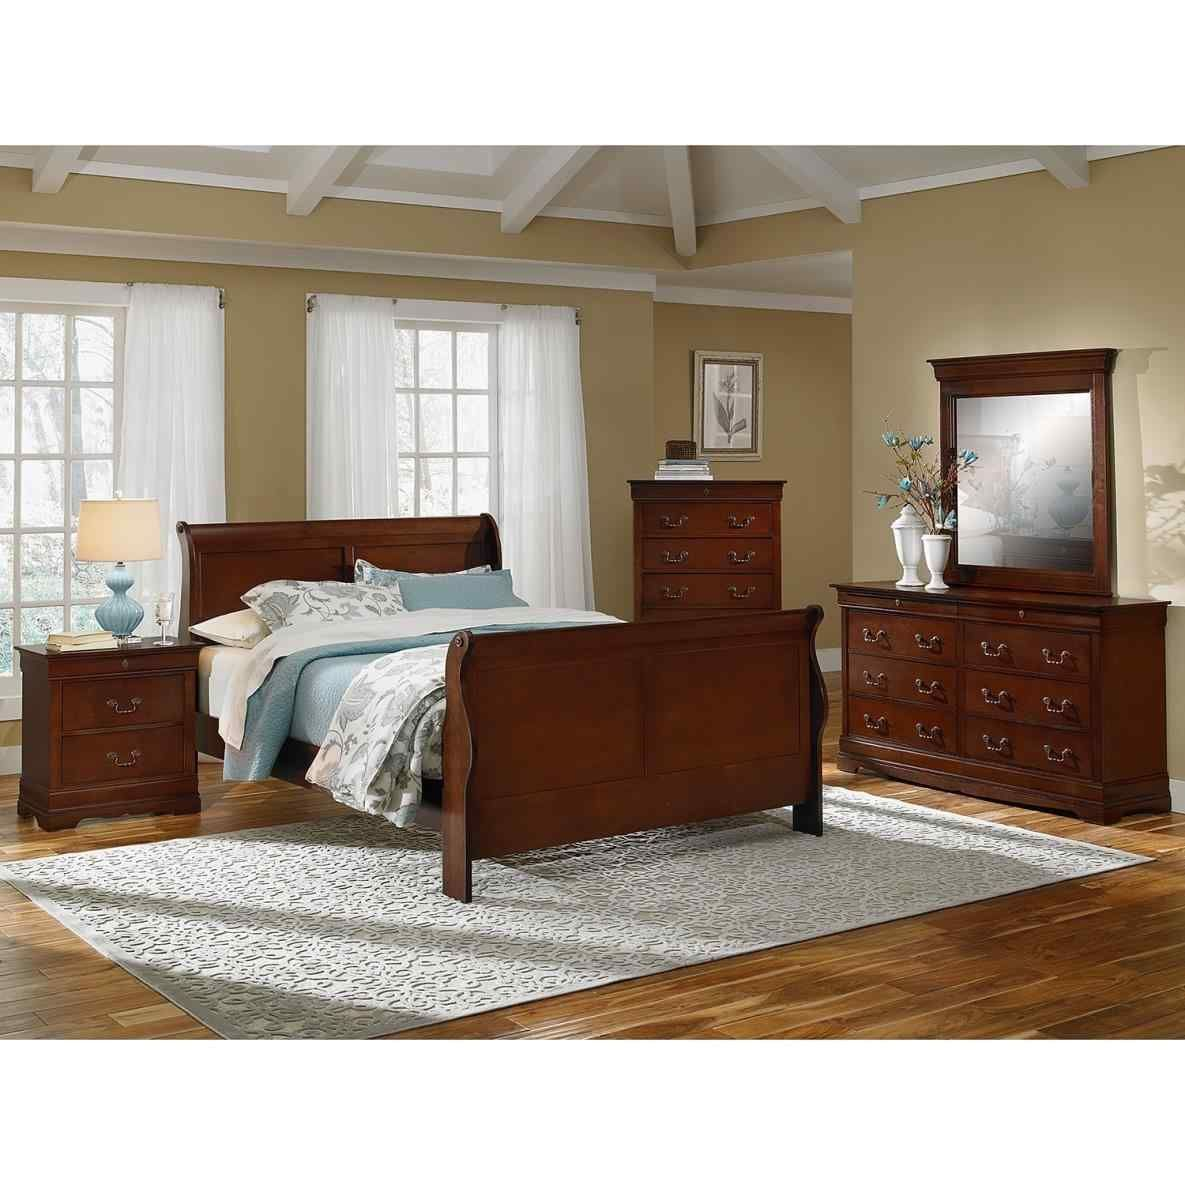 Used Thomasville Bedroom Furniture Interior Design Master Check More At Http Www Magic009